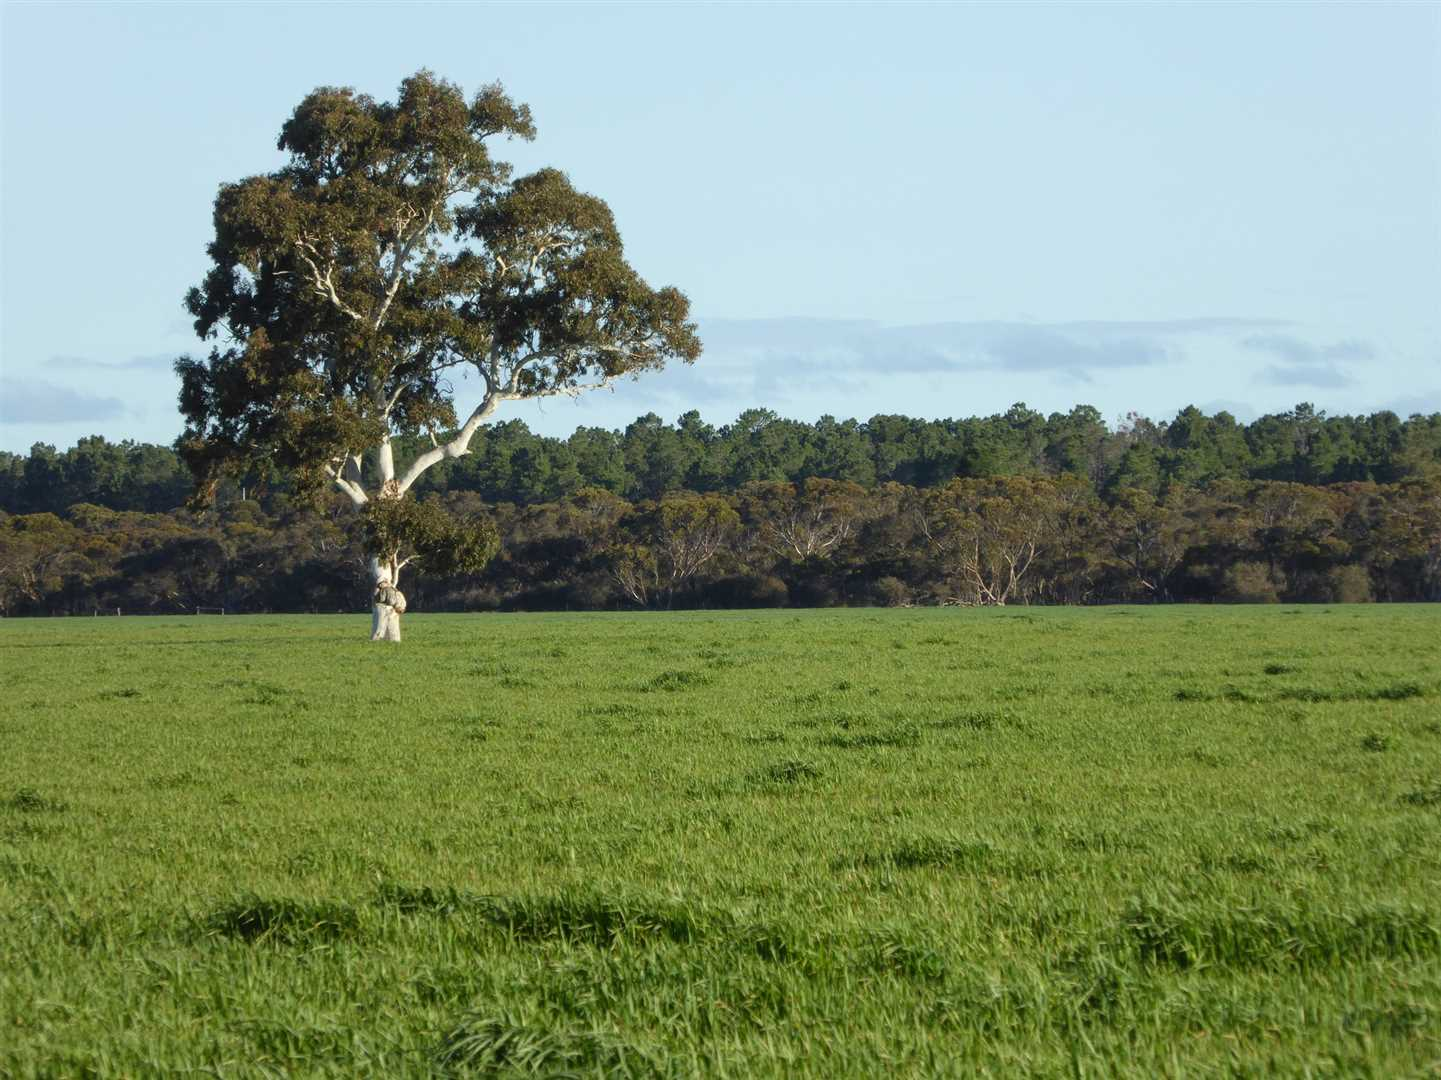 218ha (538ac) Cropping - Grazing